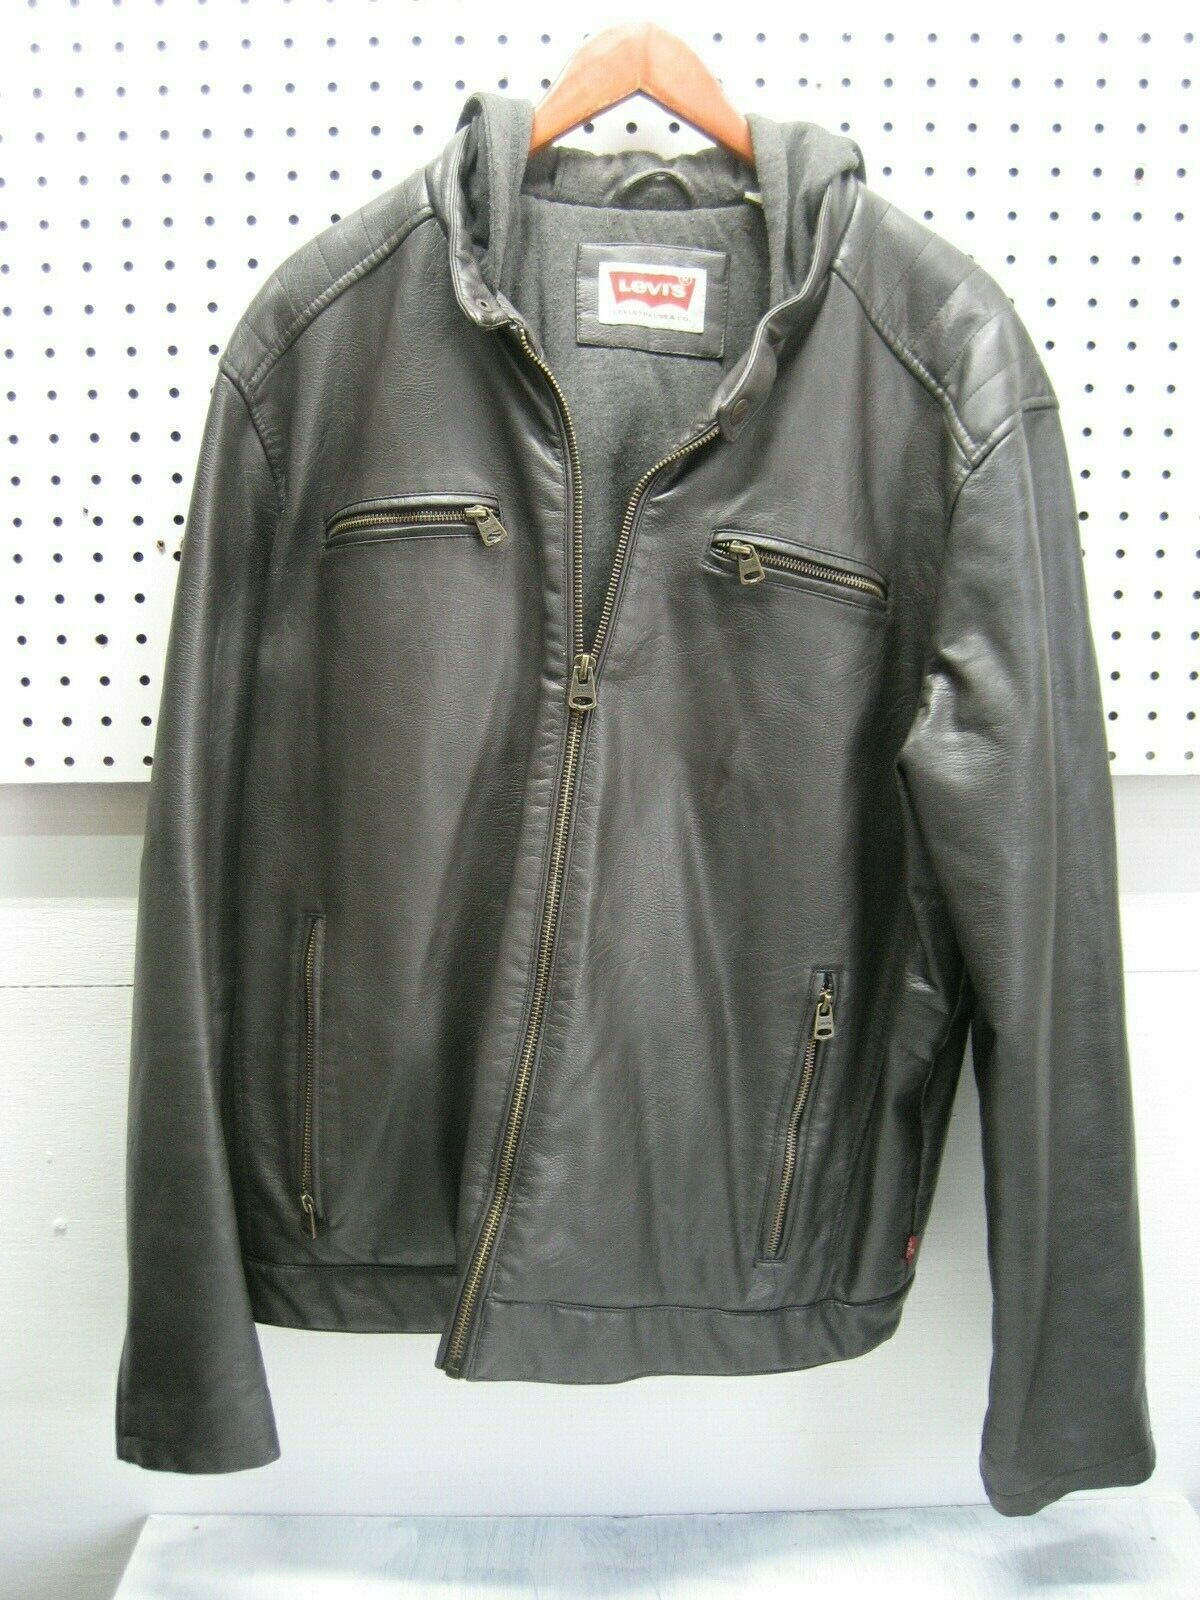 LEVIS mens brown faux leather jacket size xl Brown faux